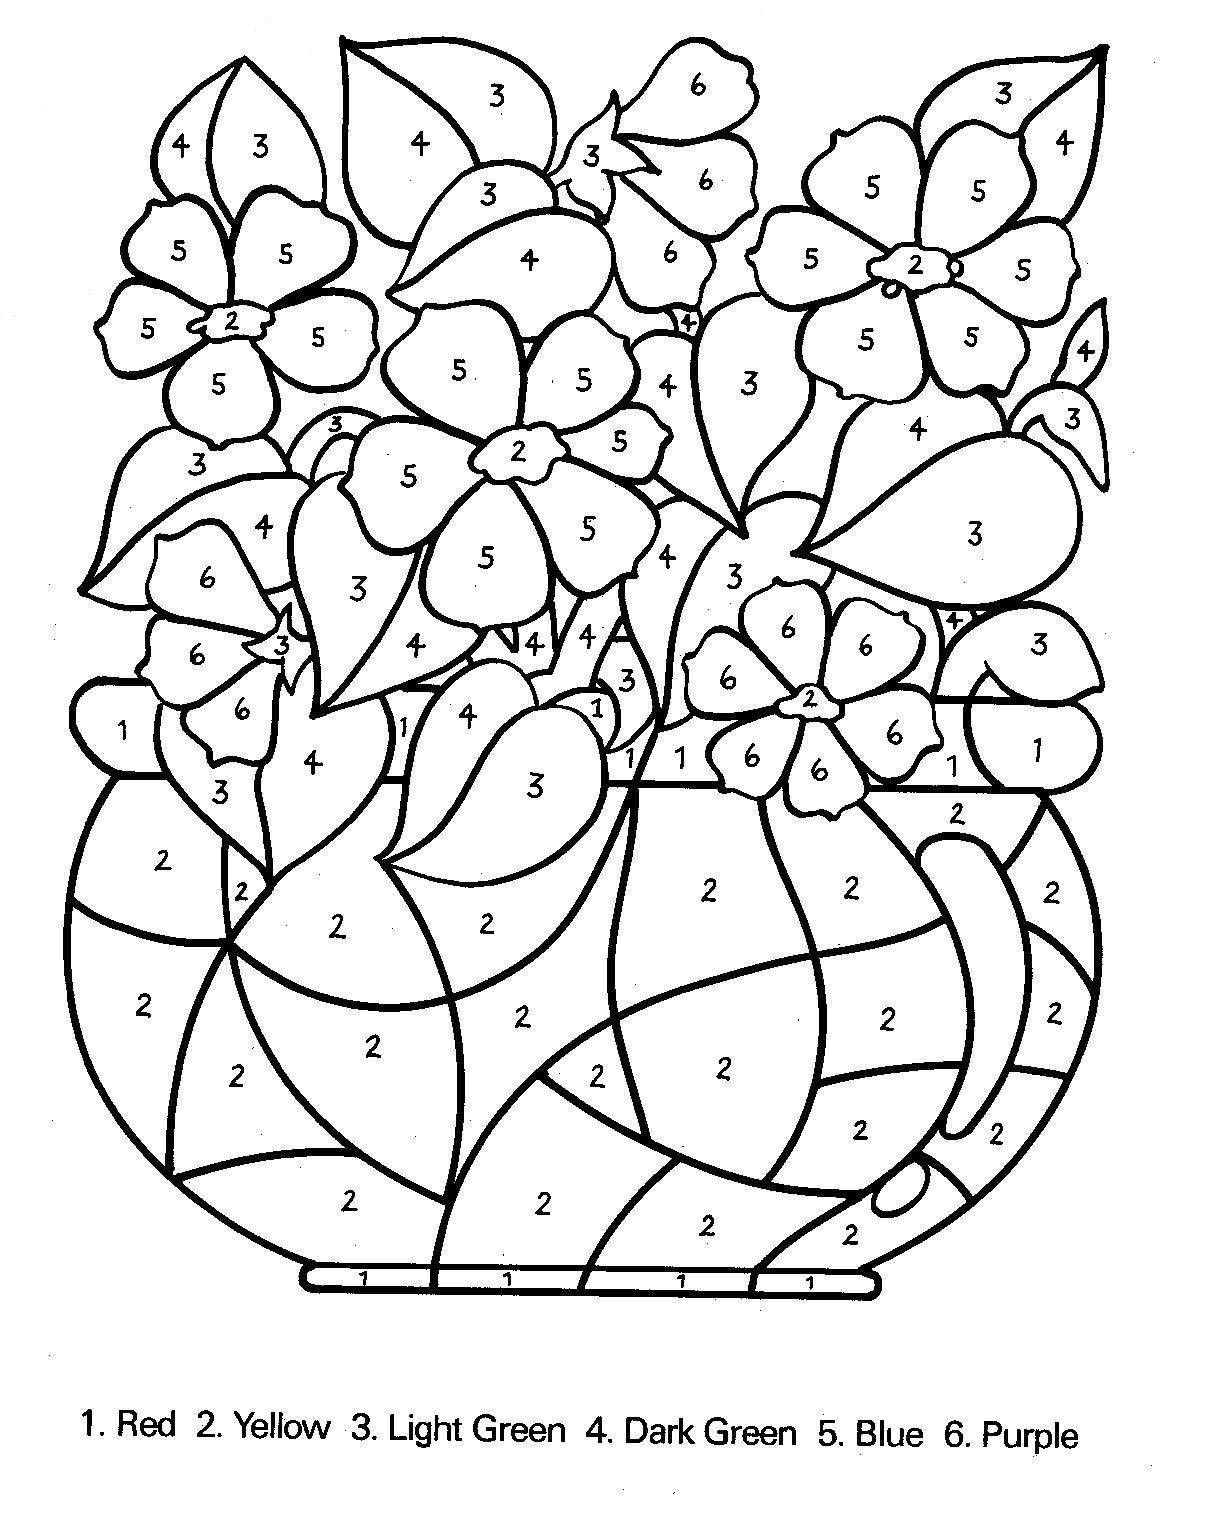 Spring coloring sheets for toddlers - Coloring Pages For Kids Printable Numbers